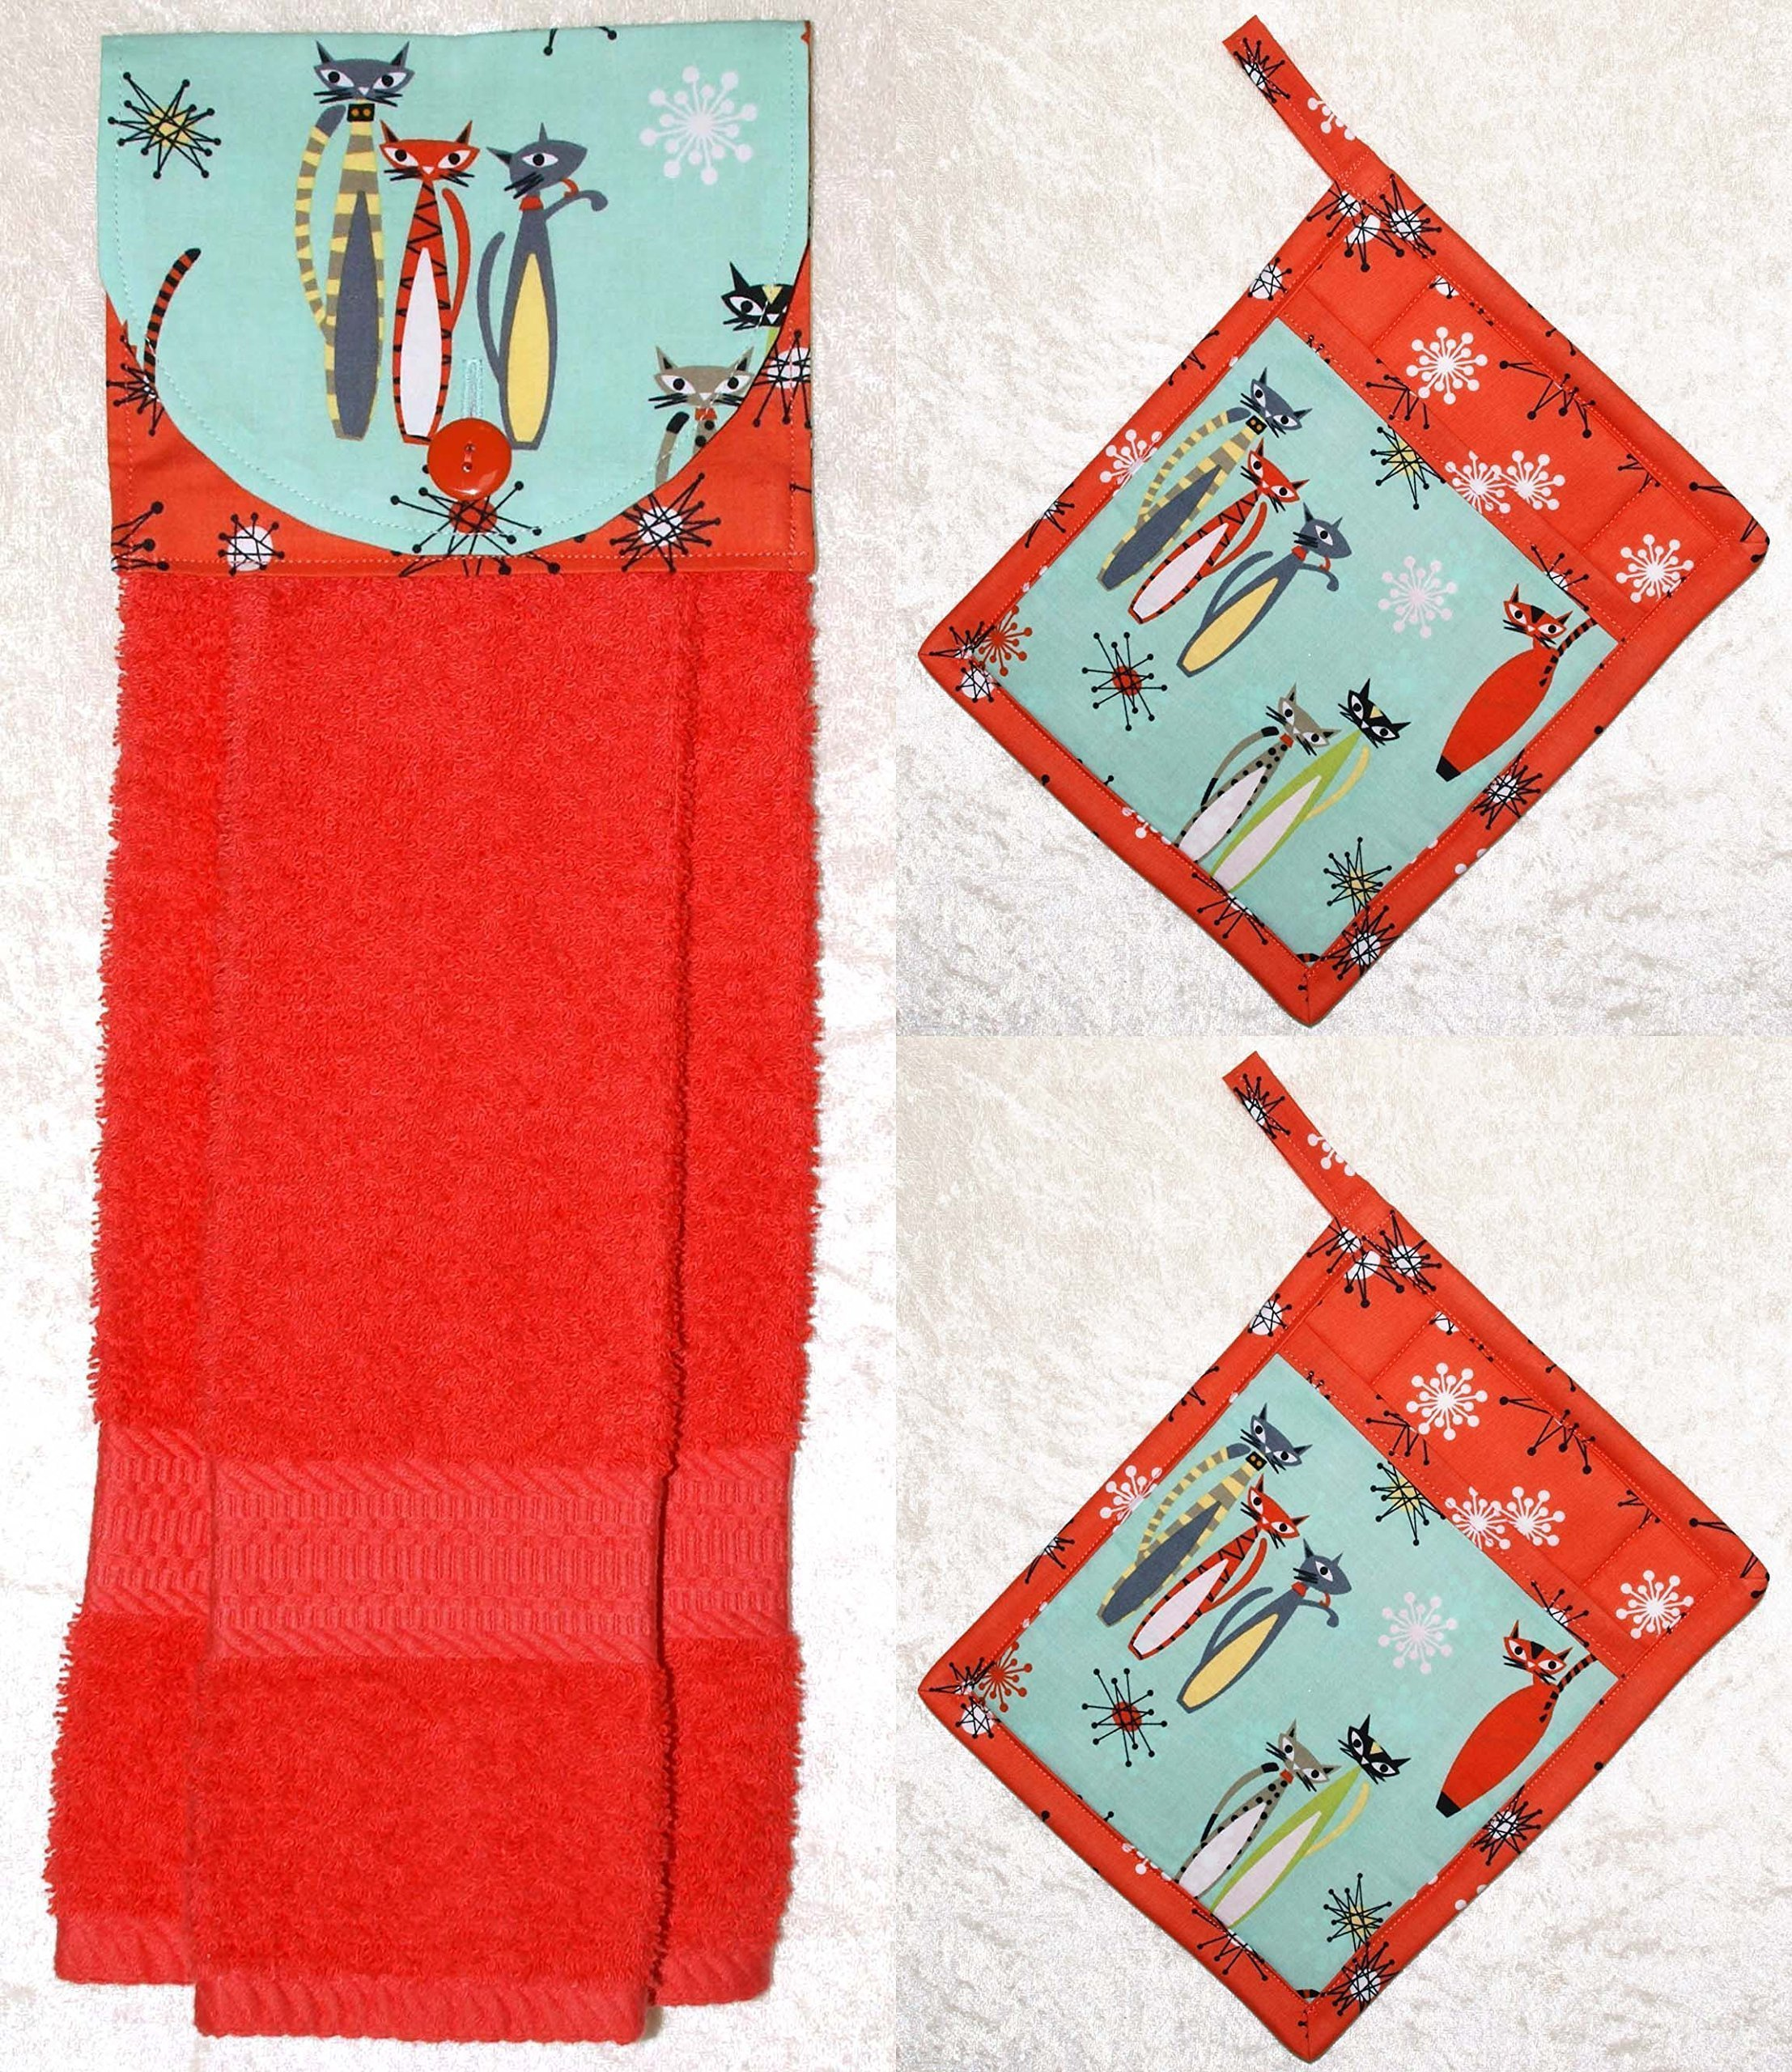 3 Piece Set - 1 Hanging Hand Towel - 2 Potholders - Retro Cats And Cosmic Starbursts On Aqua & Coral by Green Acorn Kitchen